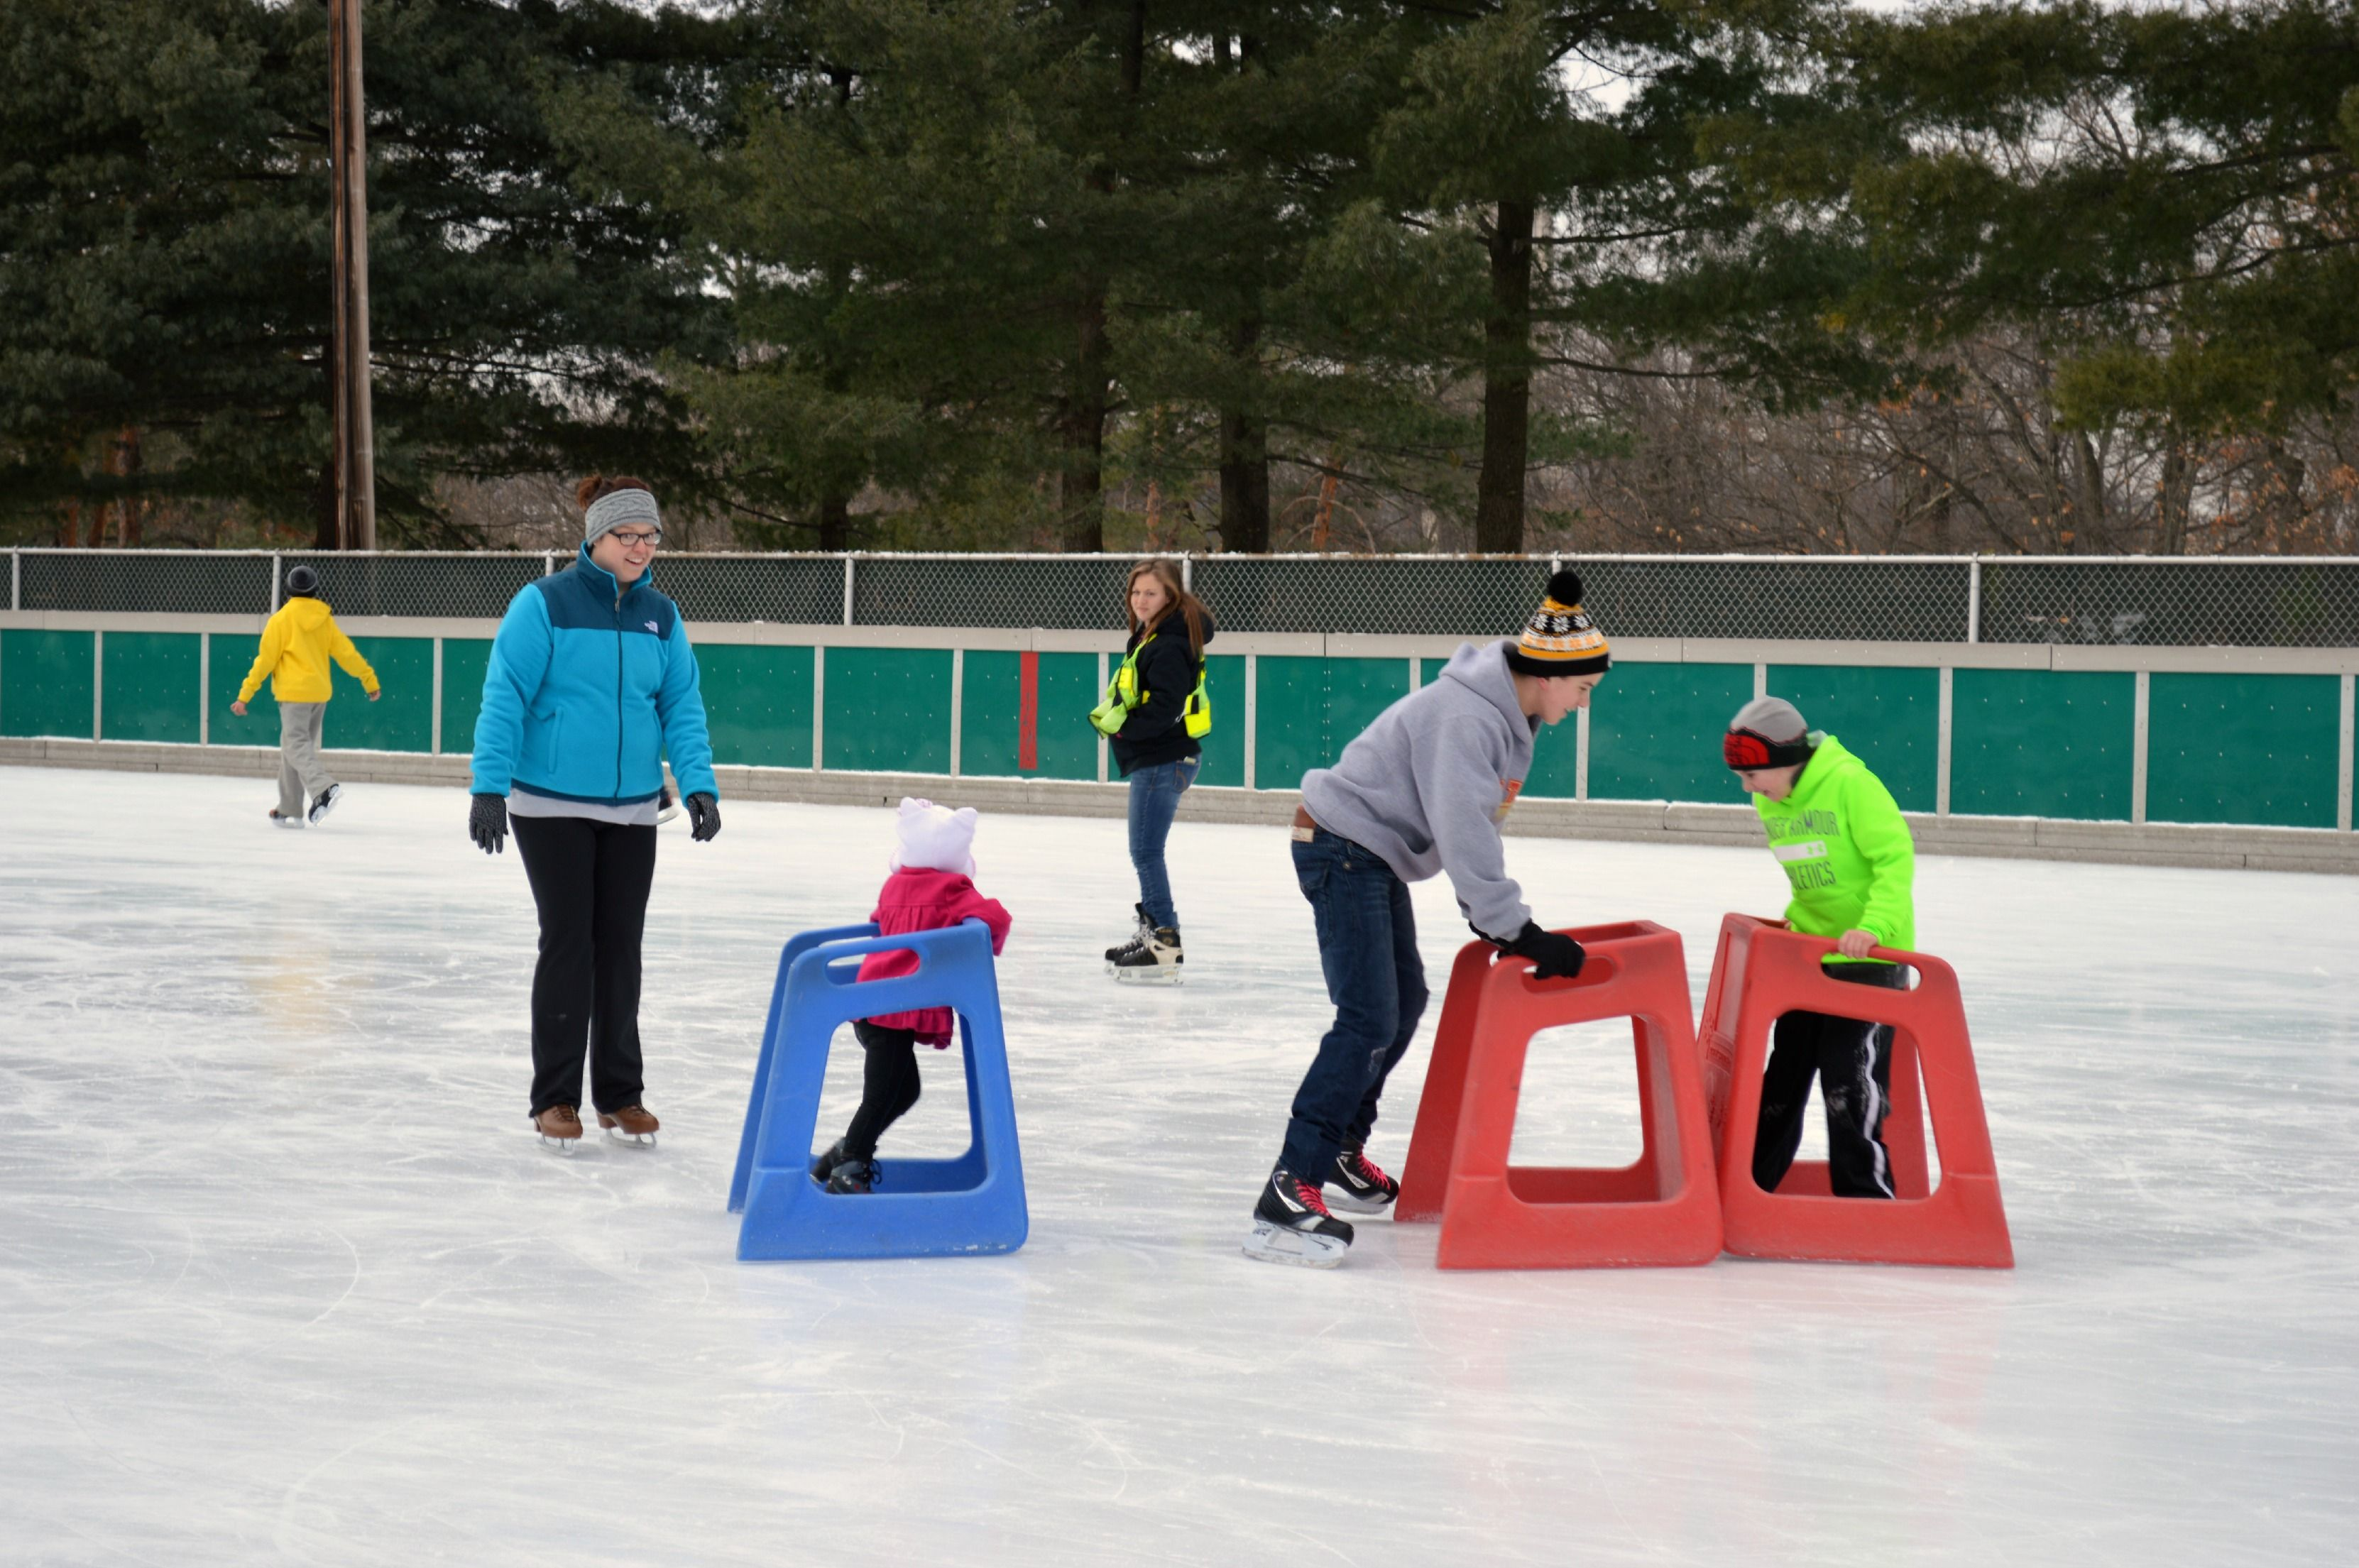 Schenley Skating Rink Outdoor Activities Play skate and have